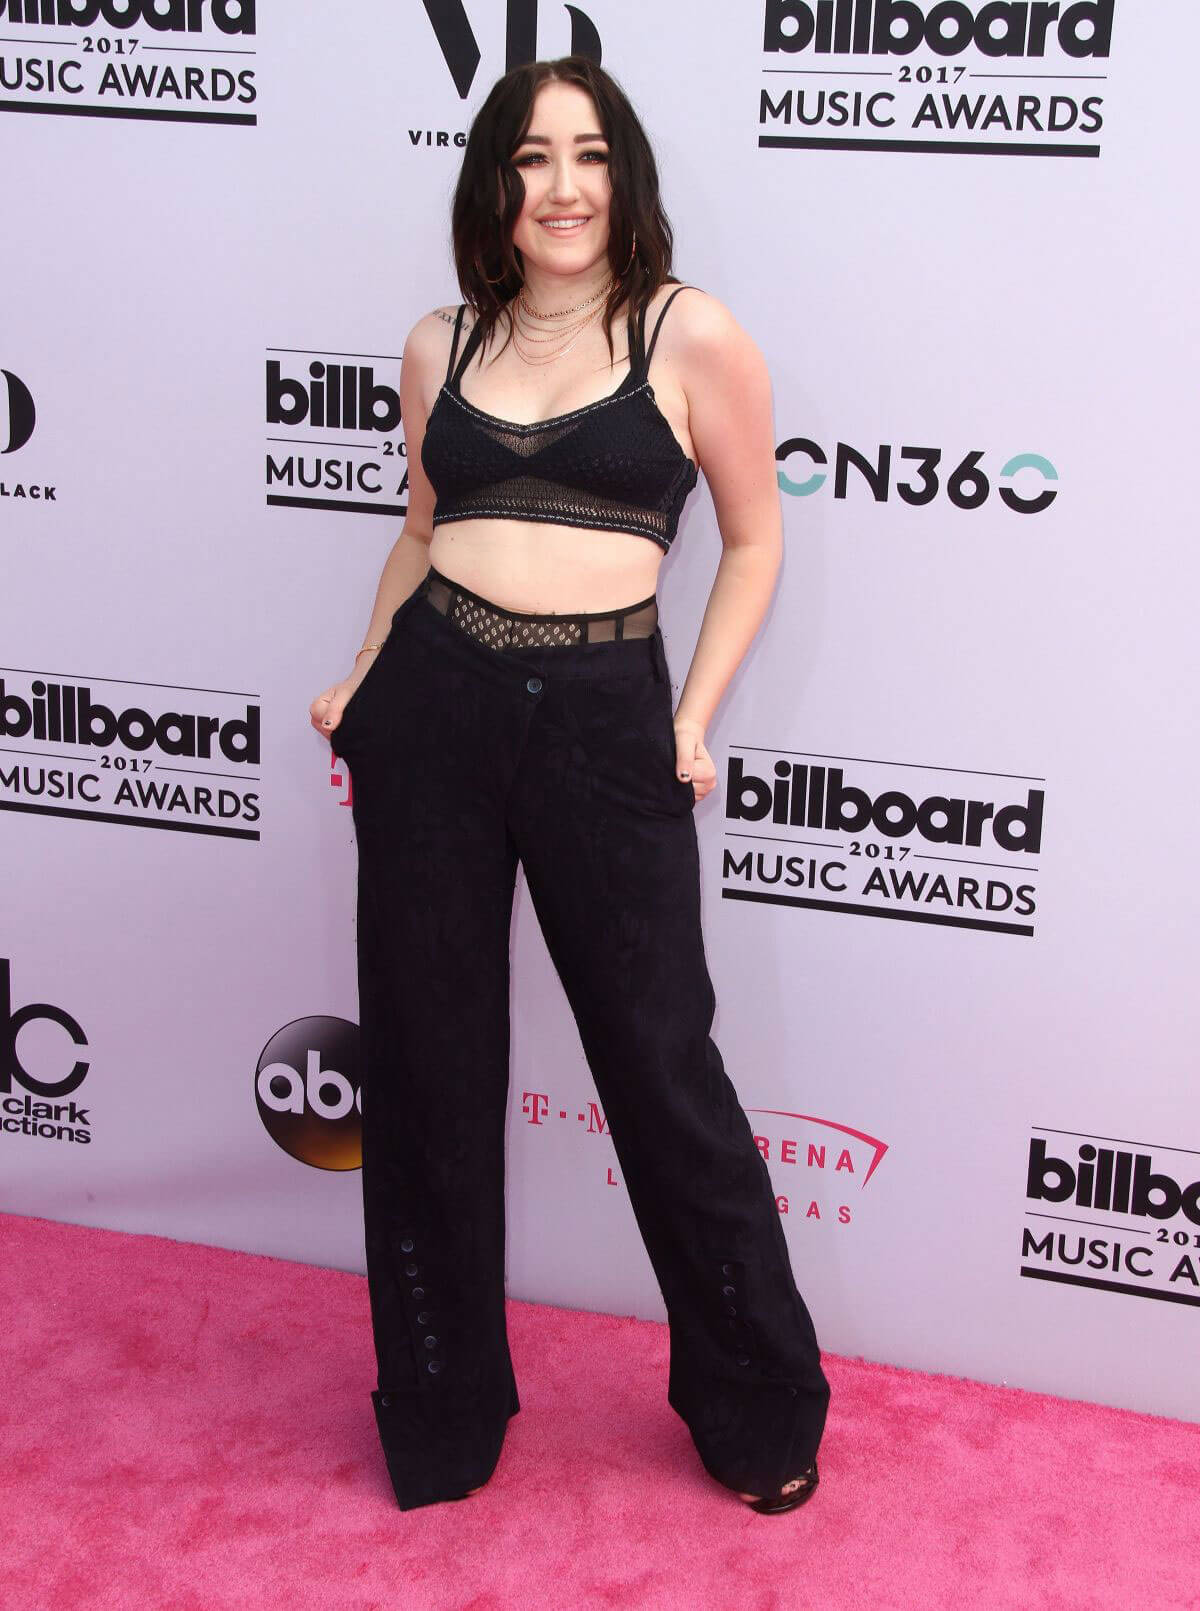 Noah Cyrus at Billboard Music Awards 2017 in Las Vegas